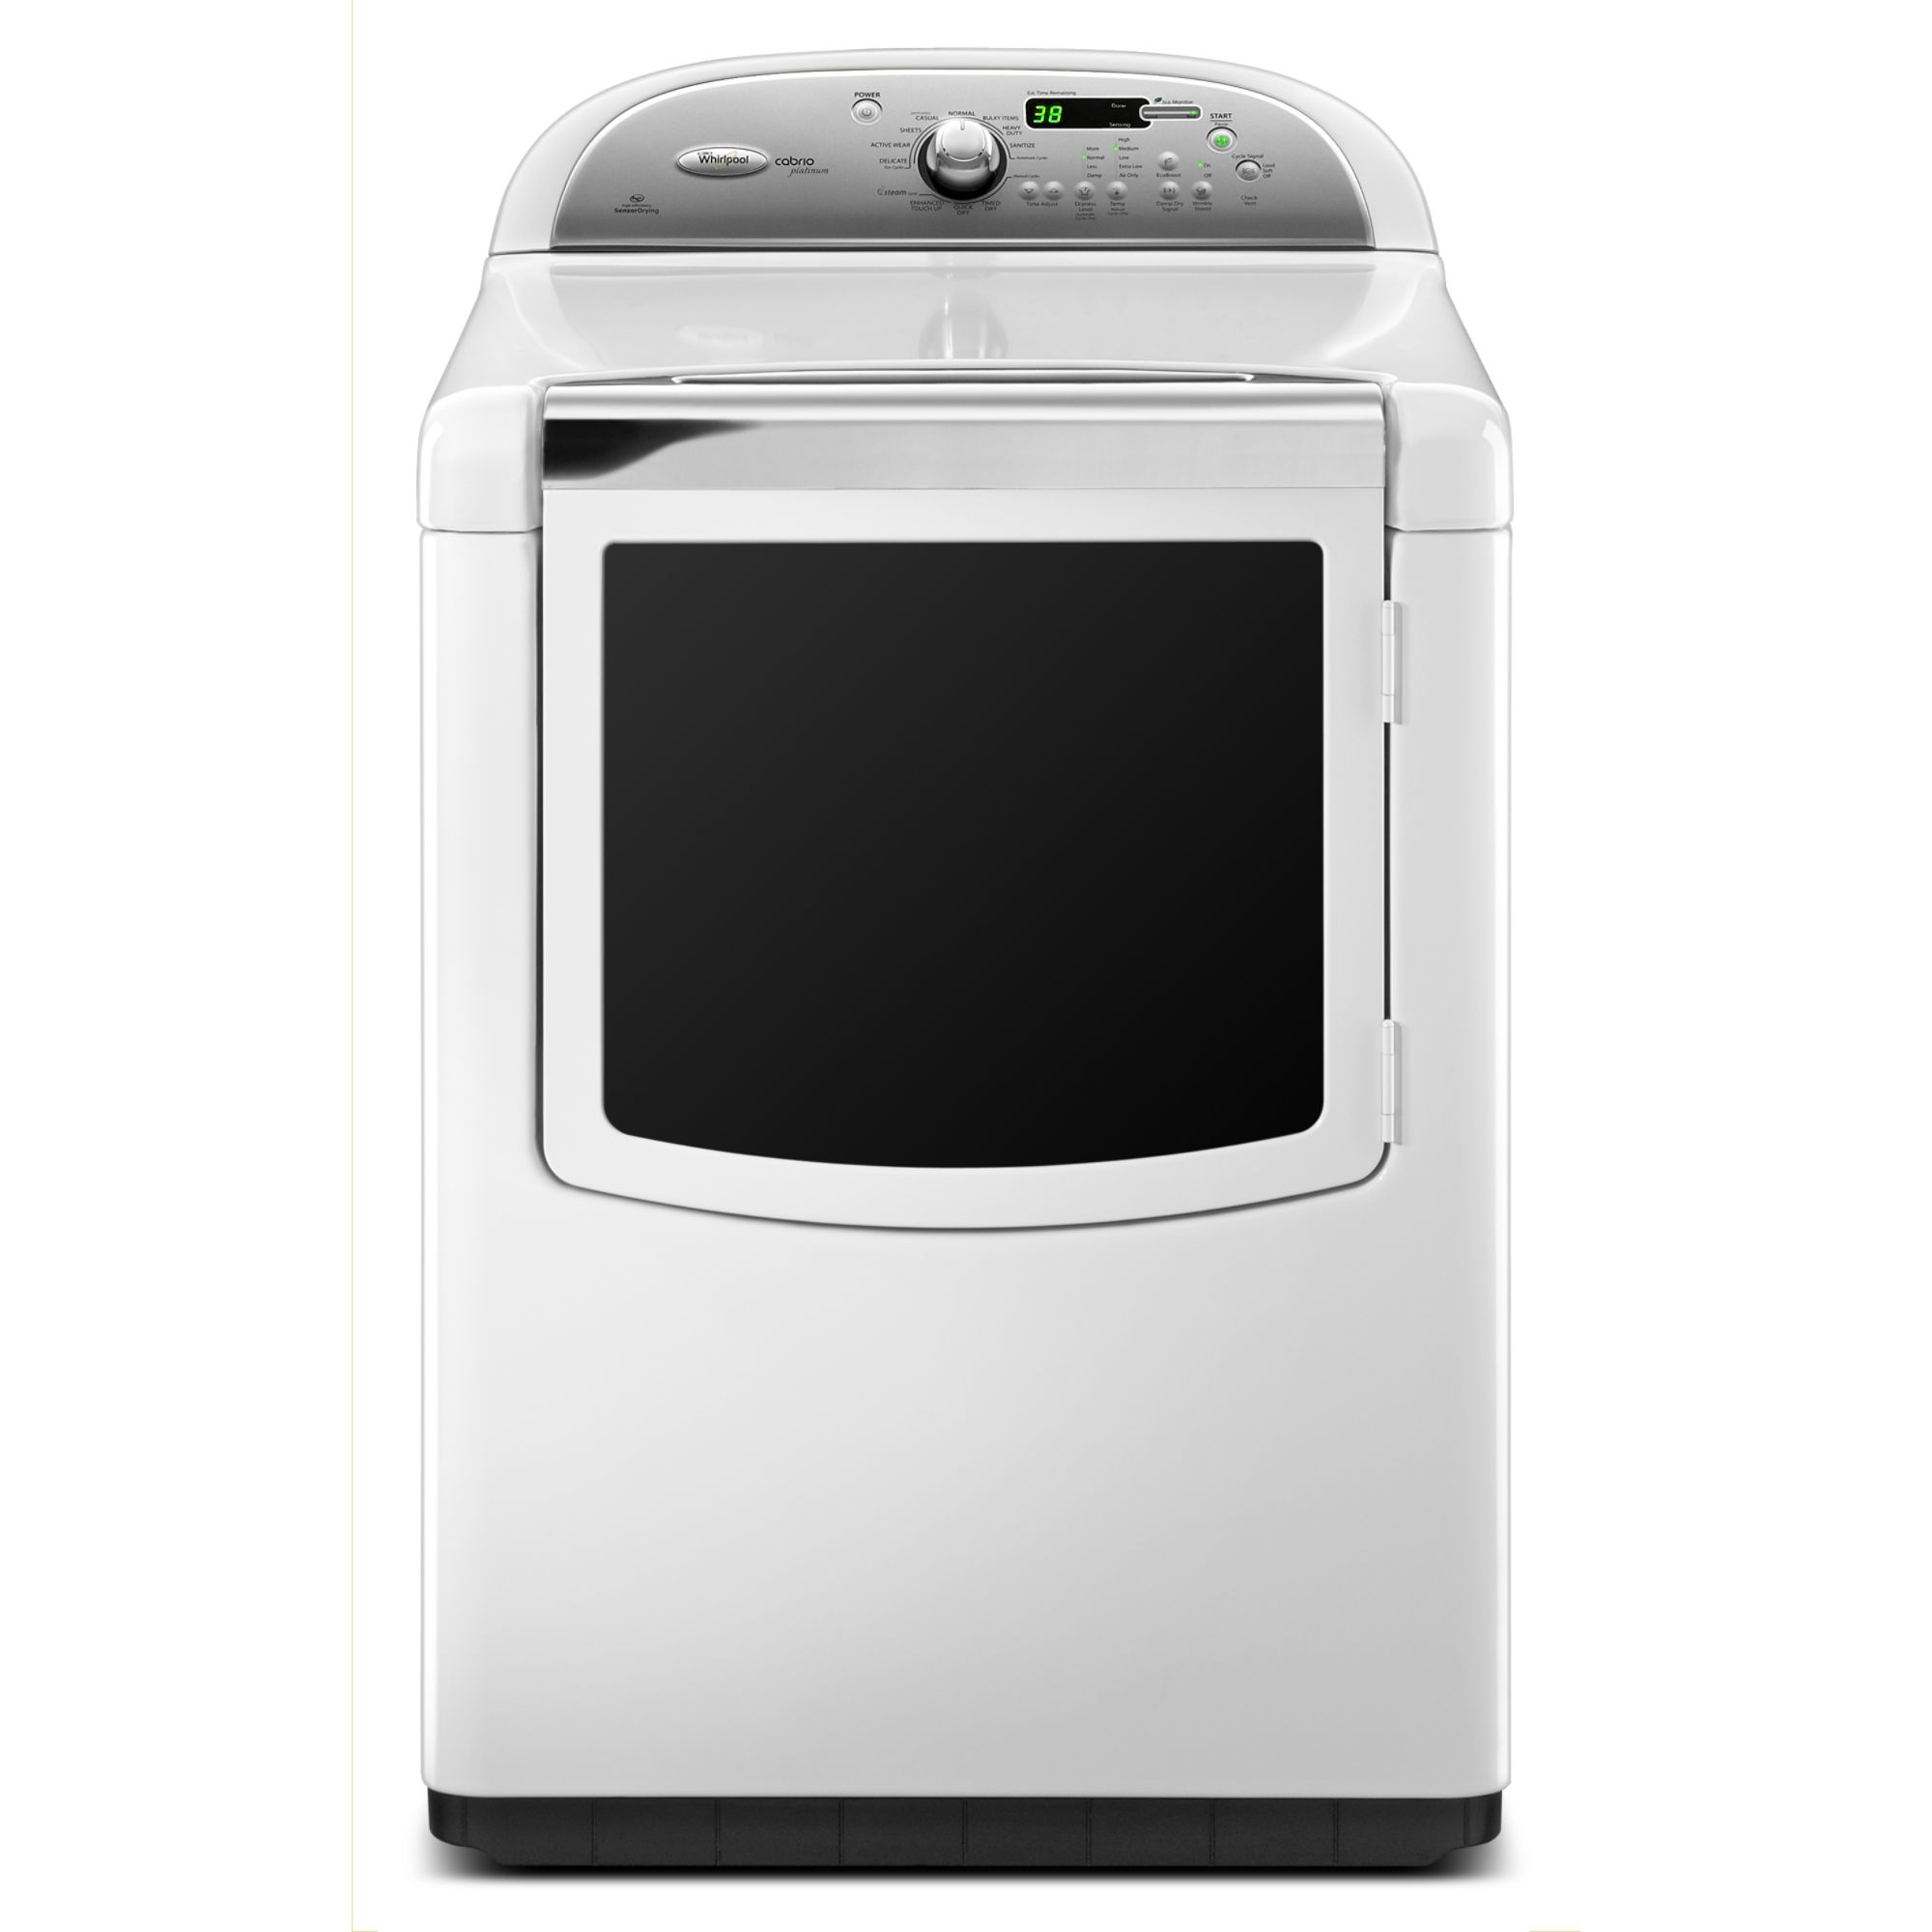 7.6 cu. ft. Electric Dryer w/ Steam Cycle - White